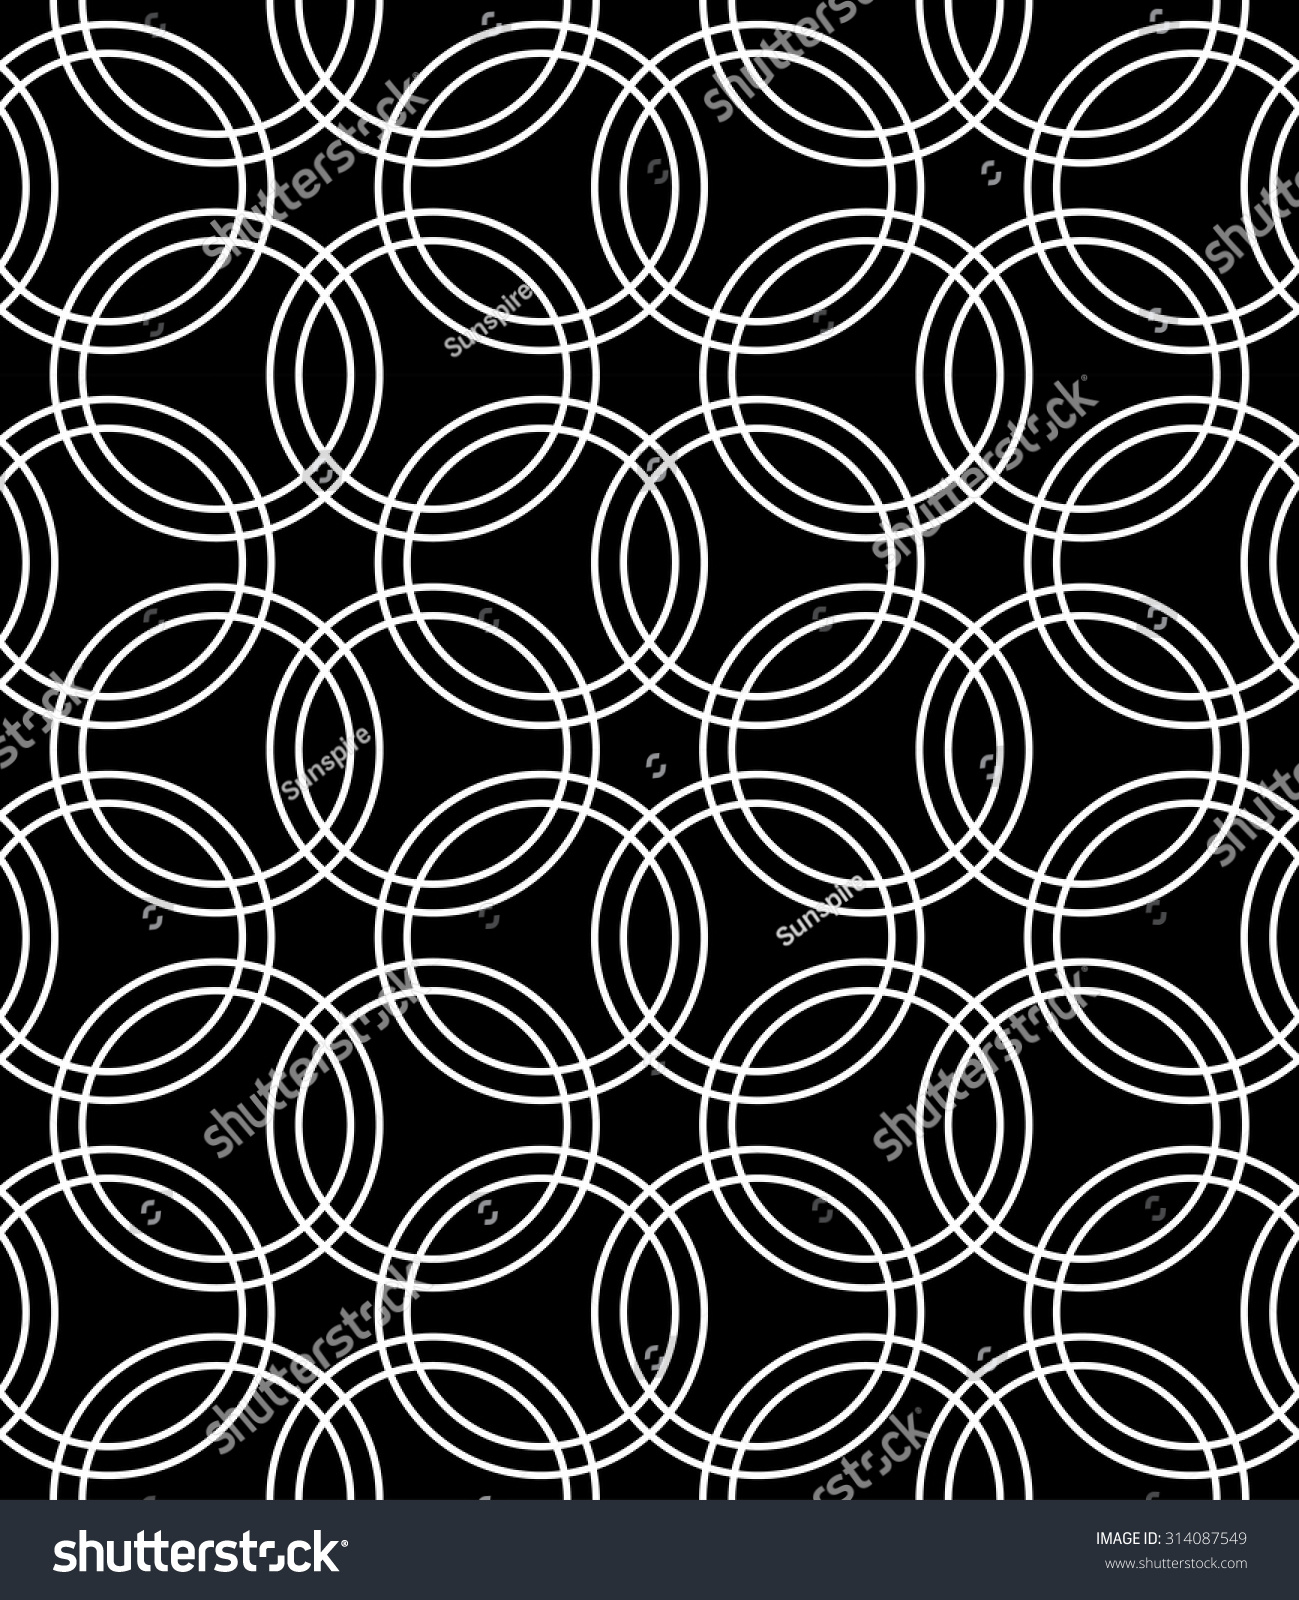 Black bed sheet texture seamless - Vector Modern Seamless Pattern Flowers Black And White Textile Print Stylish Background Abstract